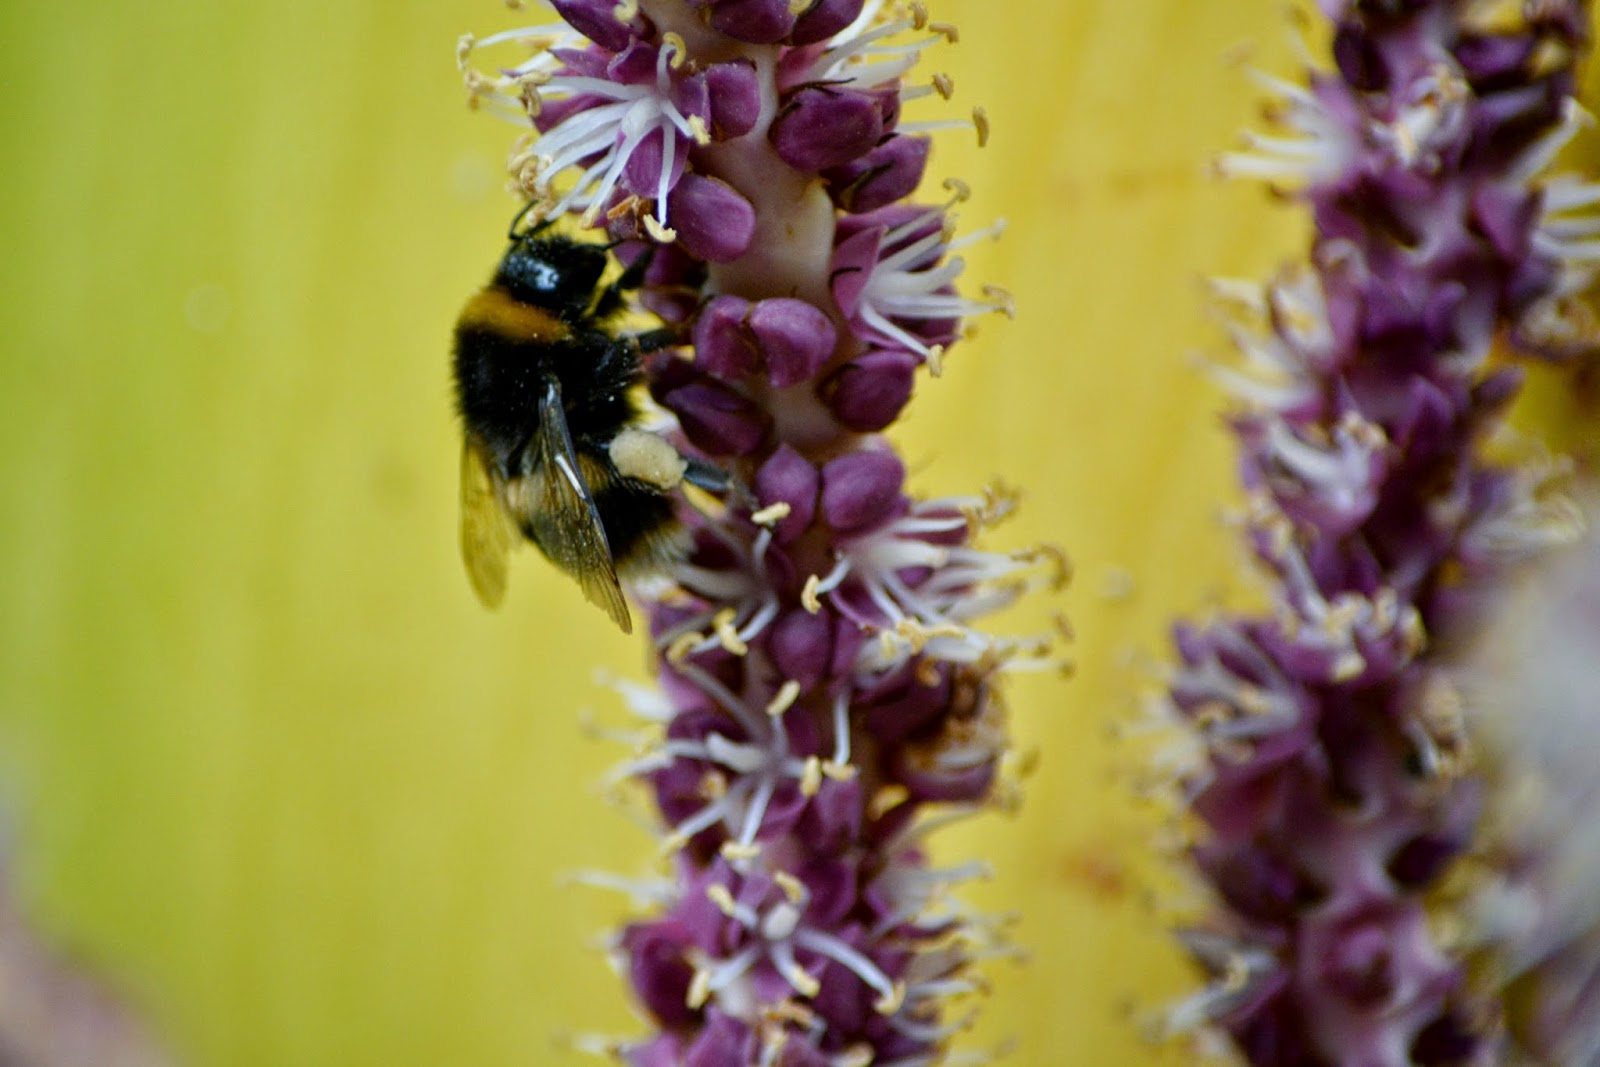 Photograph of a Bee in Tresco Abbey Gardens